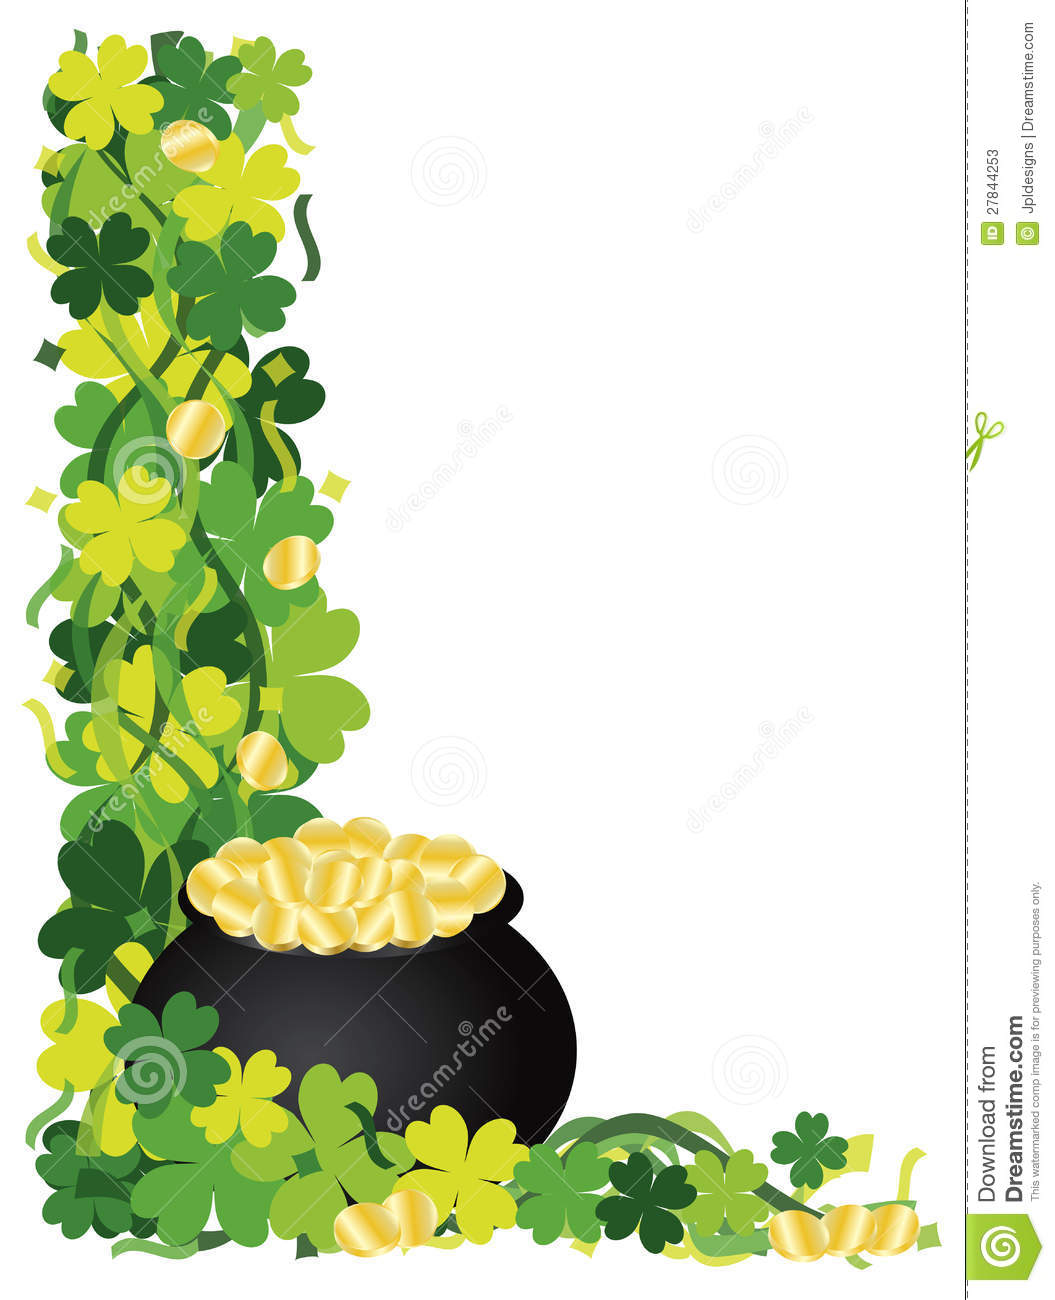 Four Leaf Clover Pot Of Gold Border Illustration Stock Photos - Image ...